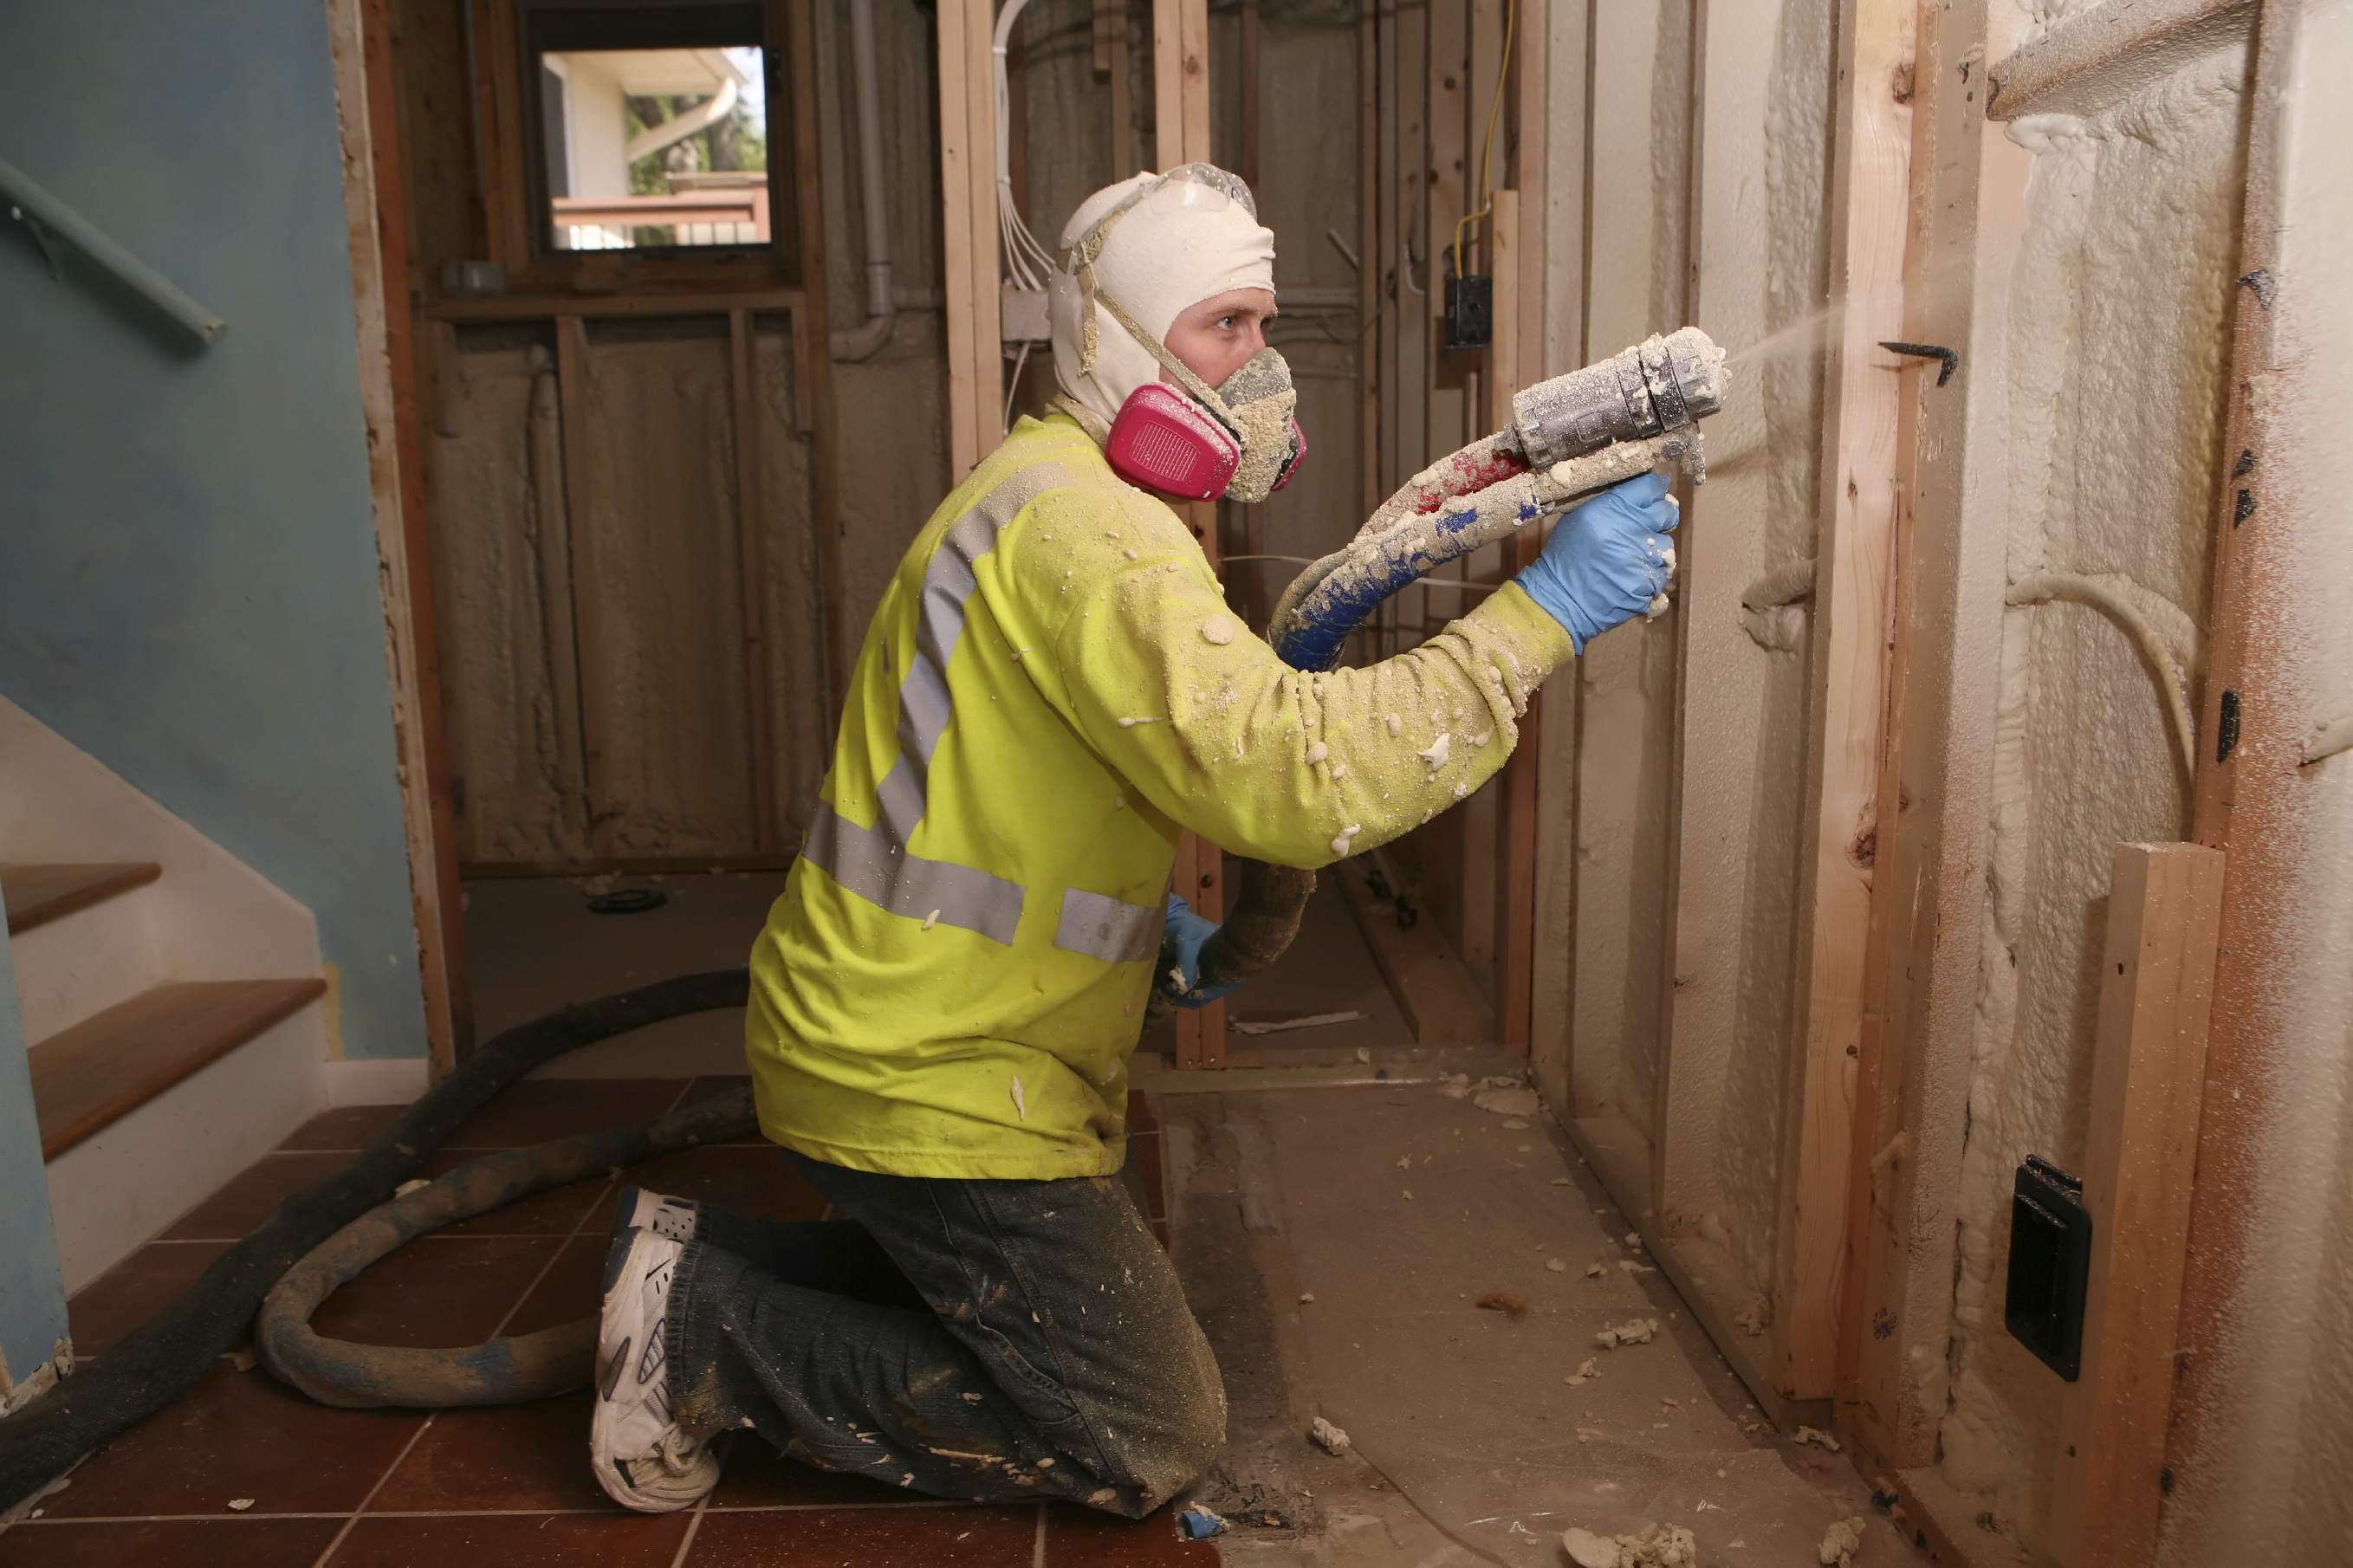 A worker in protective gear installs spray foam insulation in a home that is under construction.